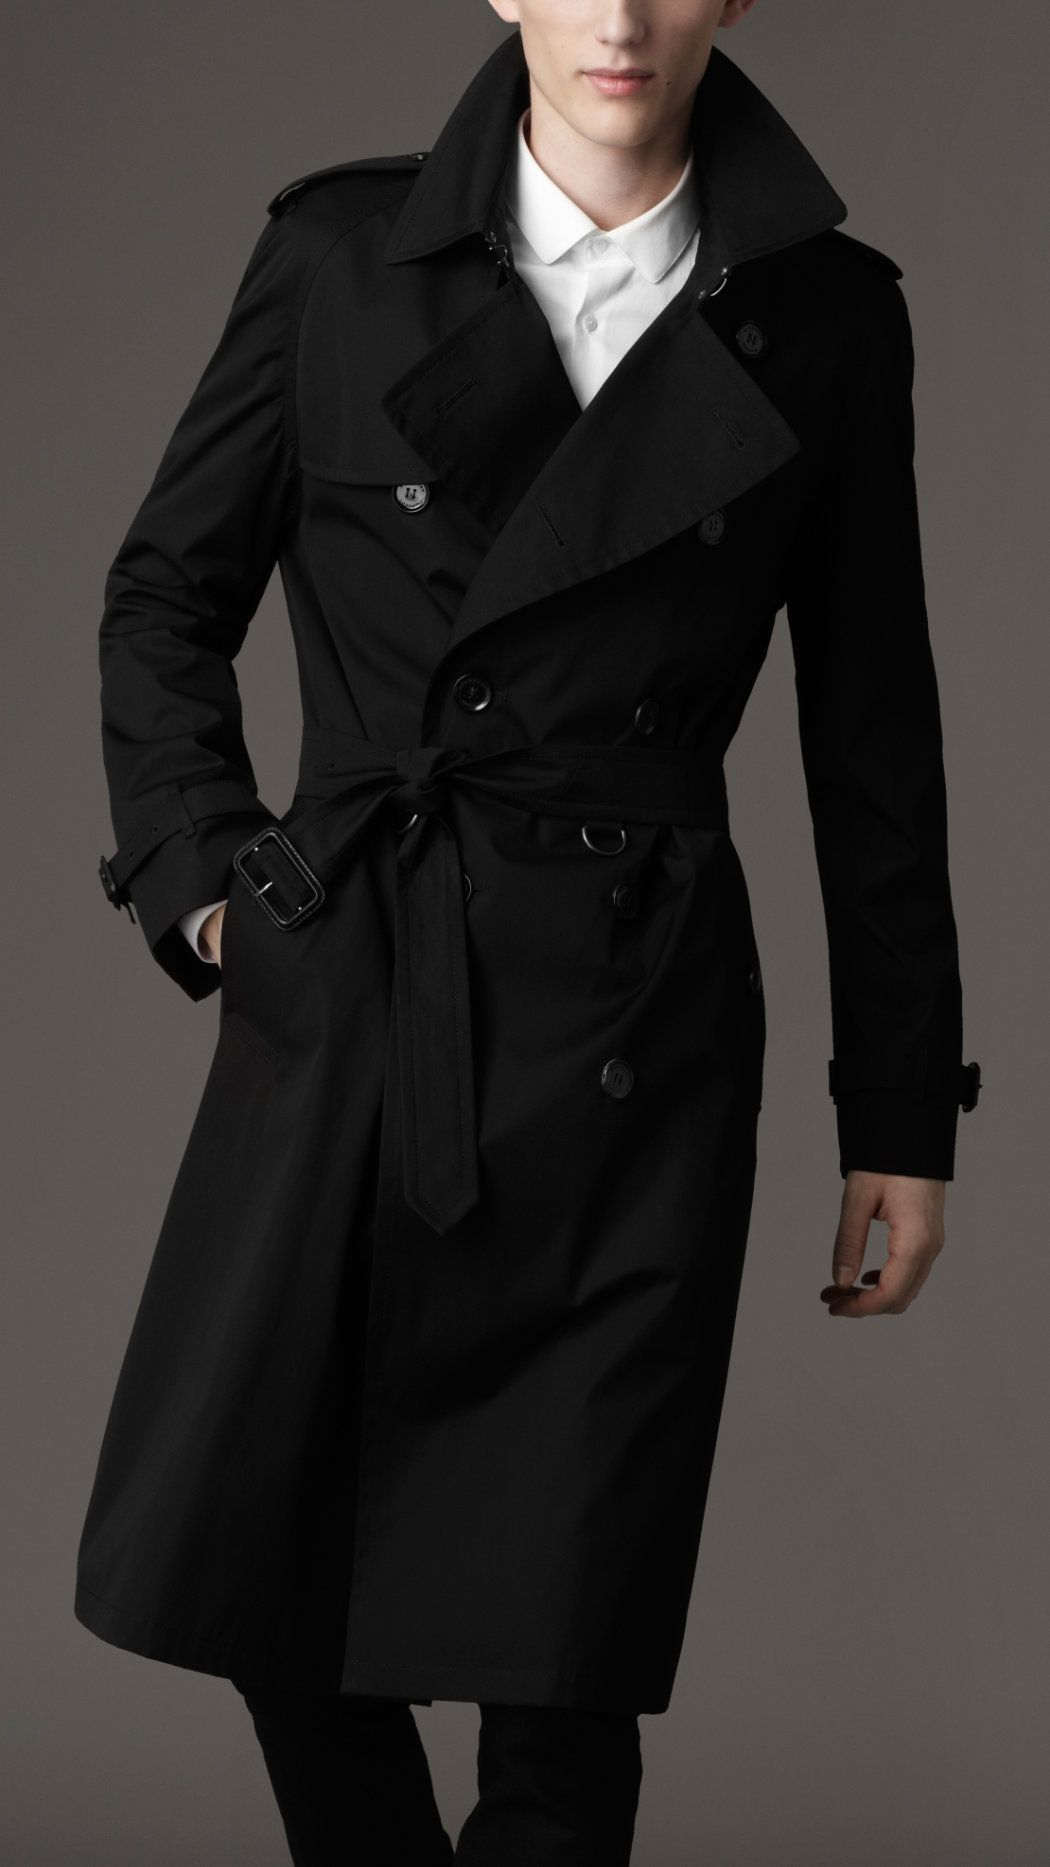 Burberry London Mens Long Back Pleat Trench Coat 3 Jpg 1050 1867 Trench Coat Men Men S Trench Coat Trench Coat